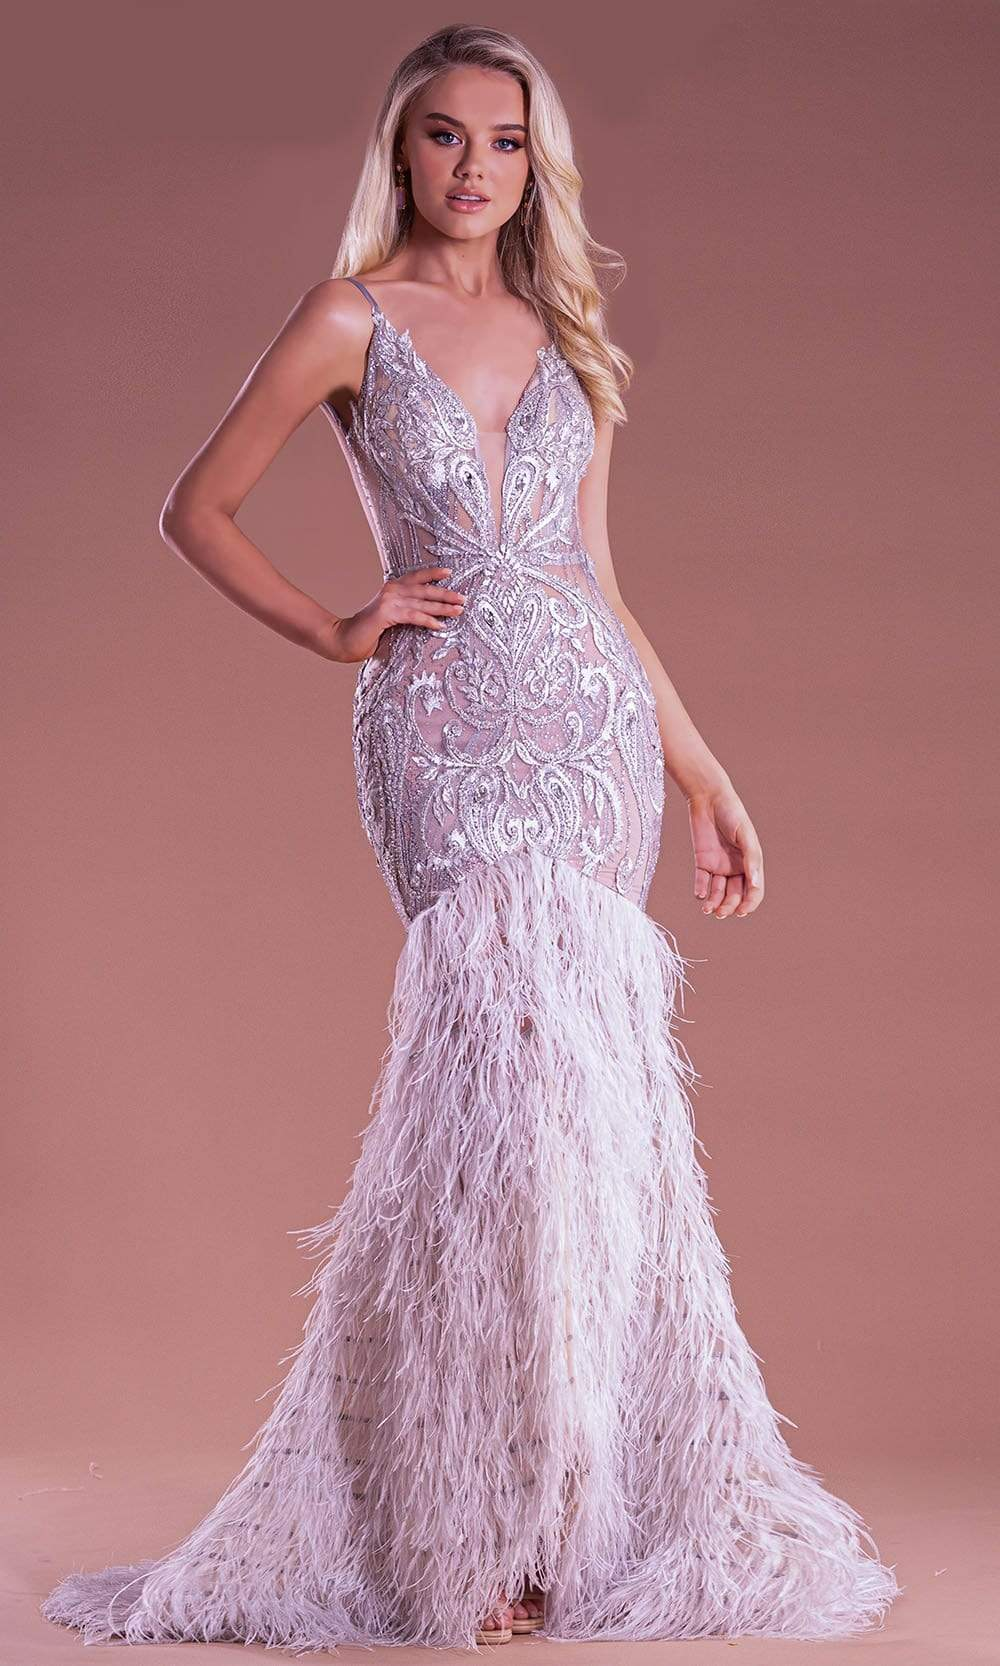 Portia and Scarlett - PS21128 Beaded Bodice Feather Mermaid Gown from Portia and Scarlett